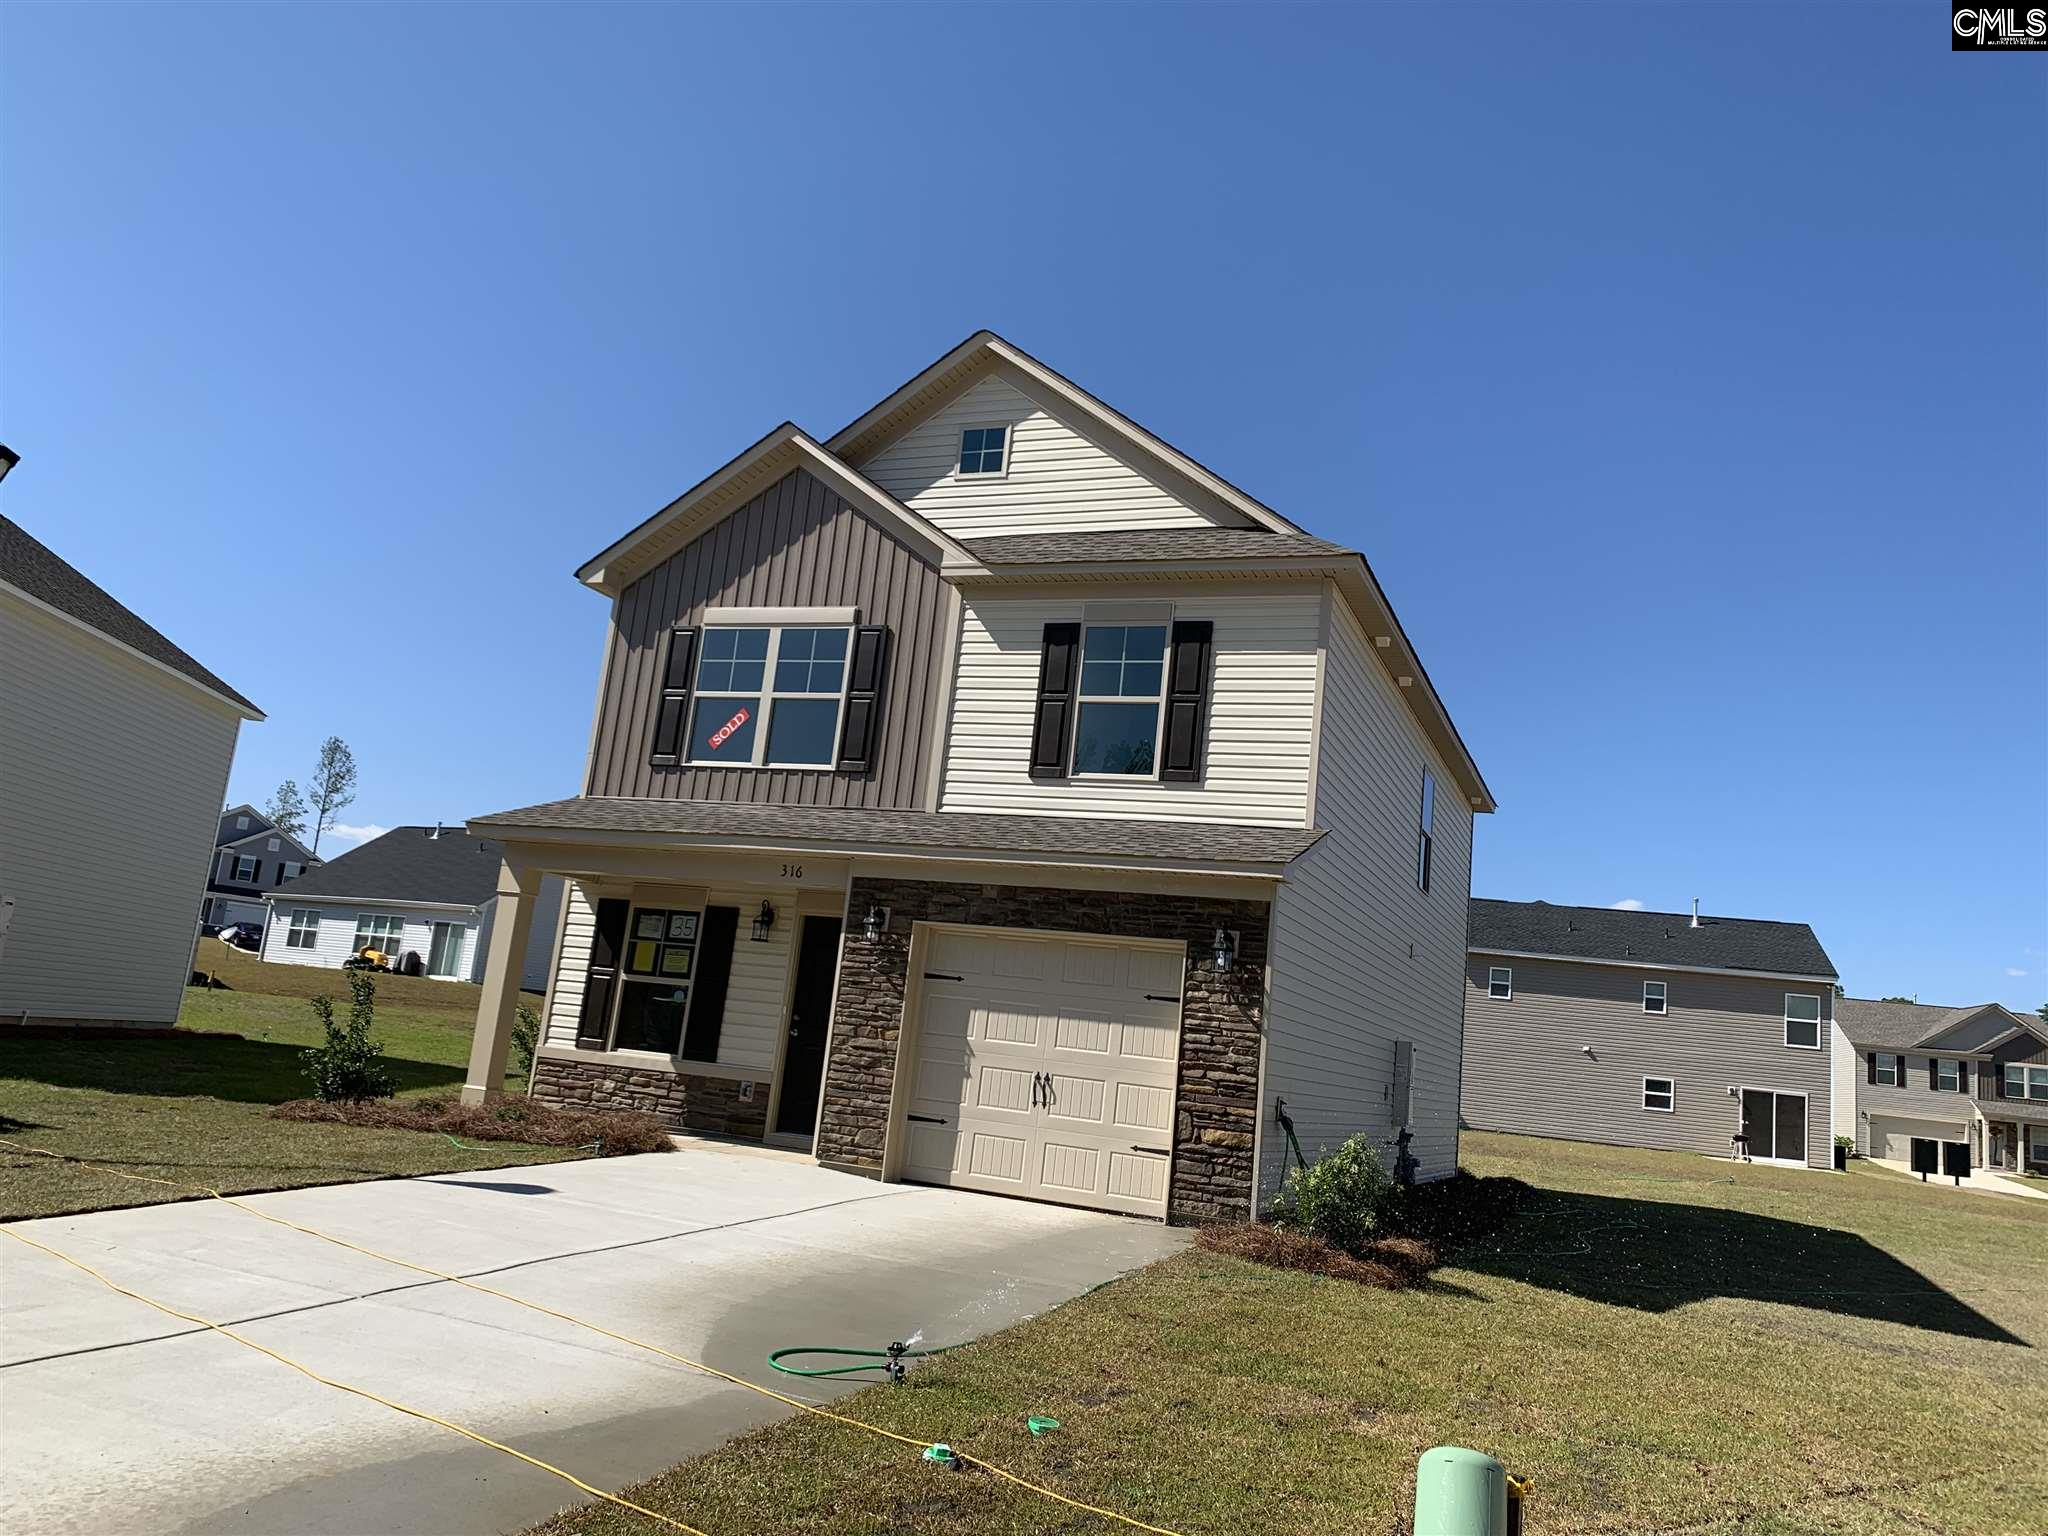 308 Summer Creek (lot 34) West Columbia, SC 29172